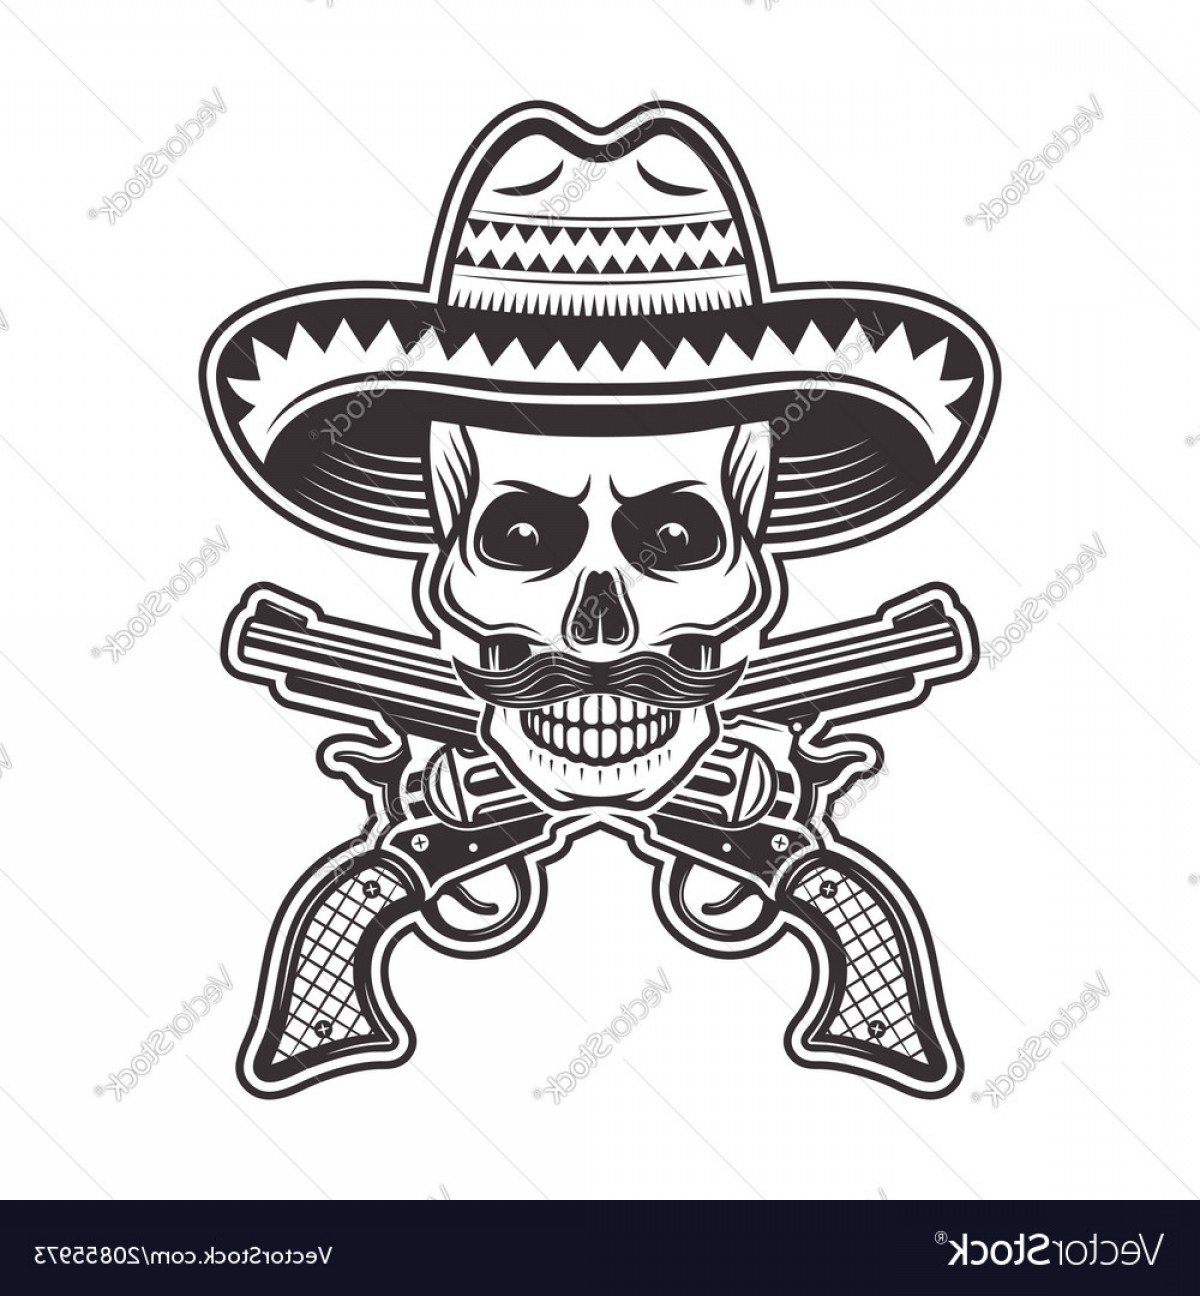 Sombrero Hat Vector: Mexican Bandit Skull In Sombrero Hat Vector